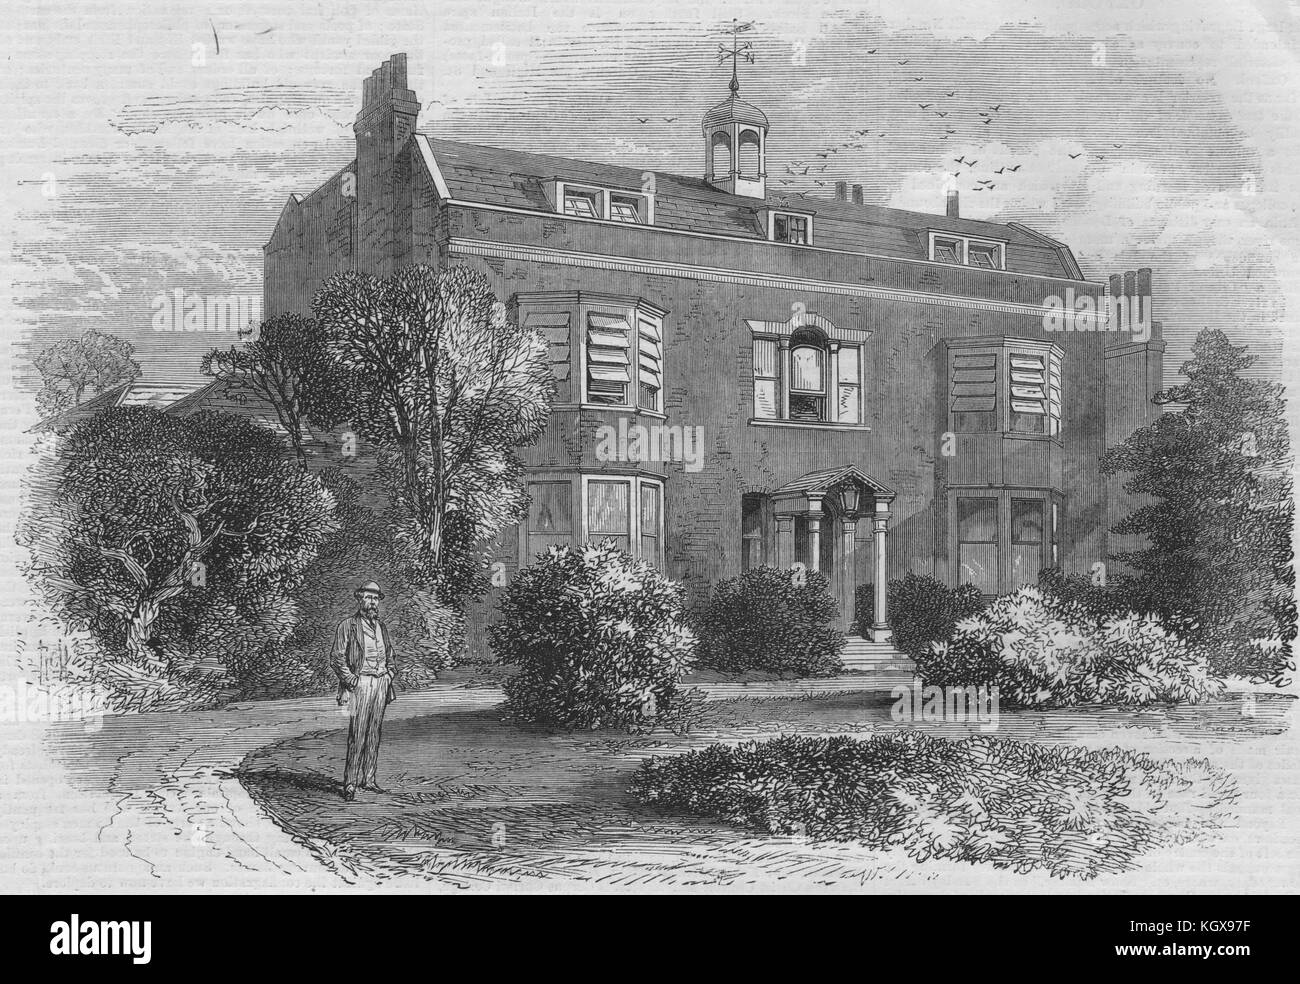 Gad's Hill Place, near Rochester, the home of Charles Dickens. Kent 1870. The Illustrated London News - Stock Image